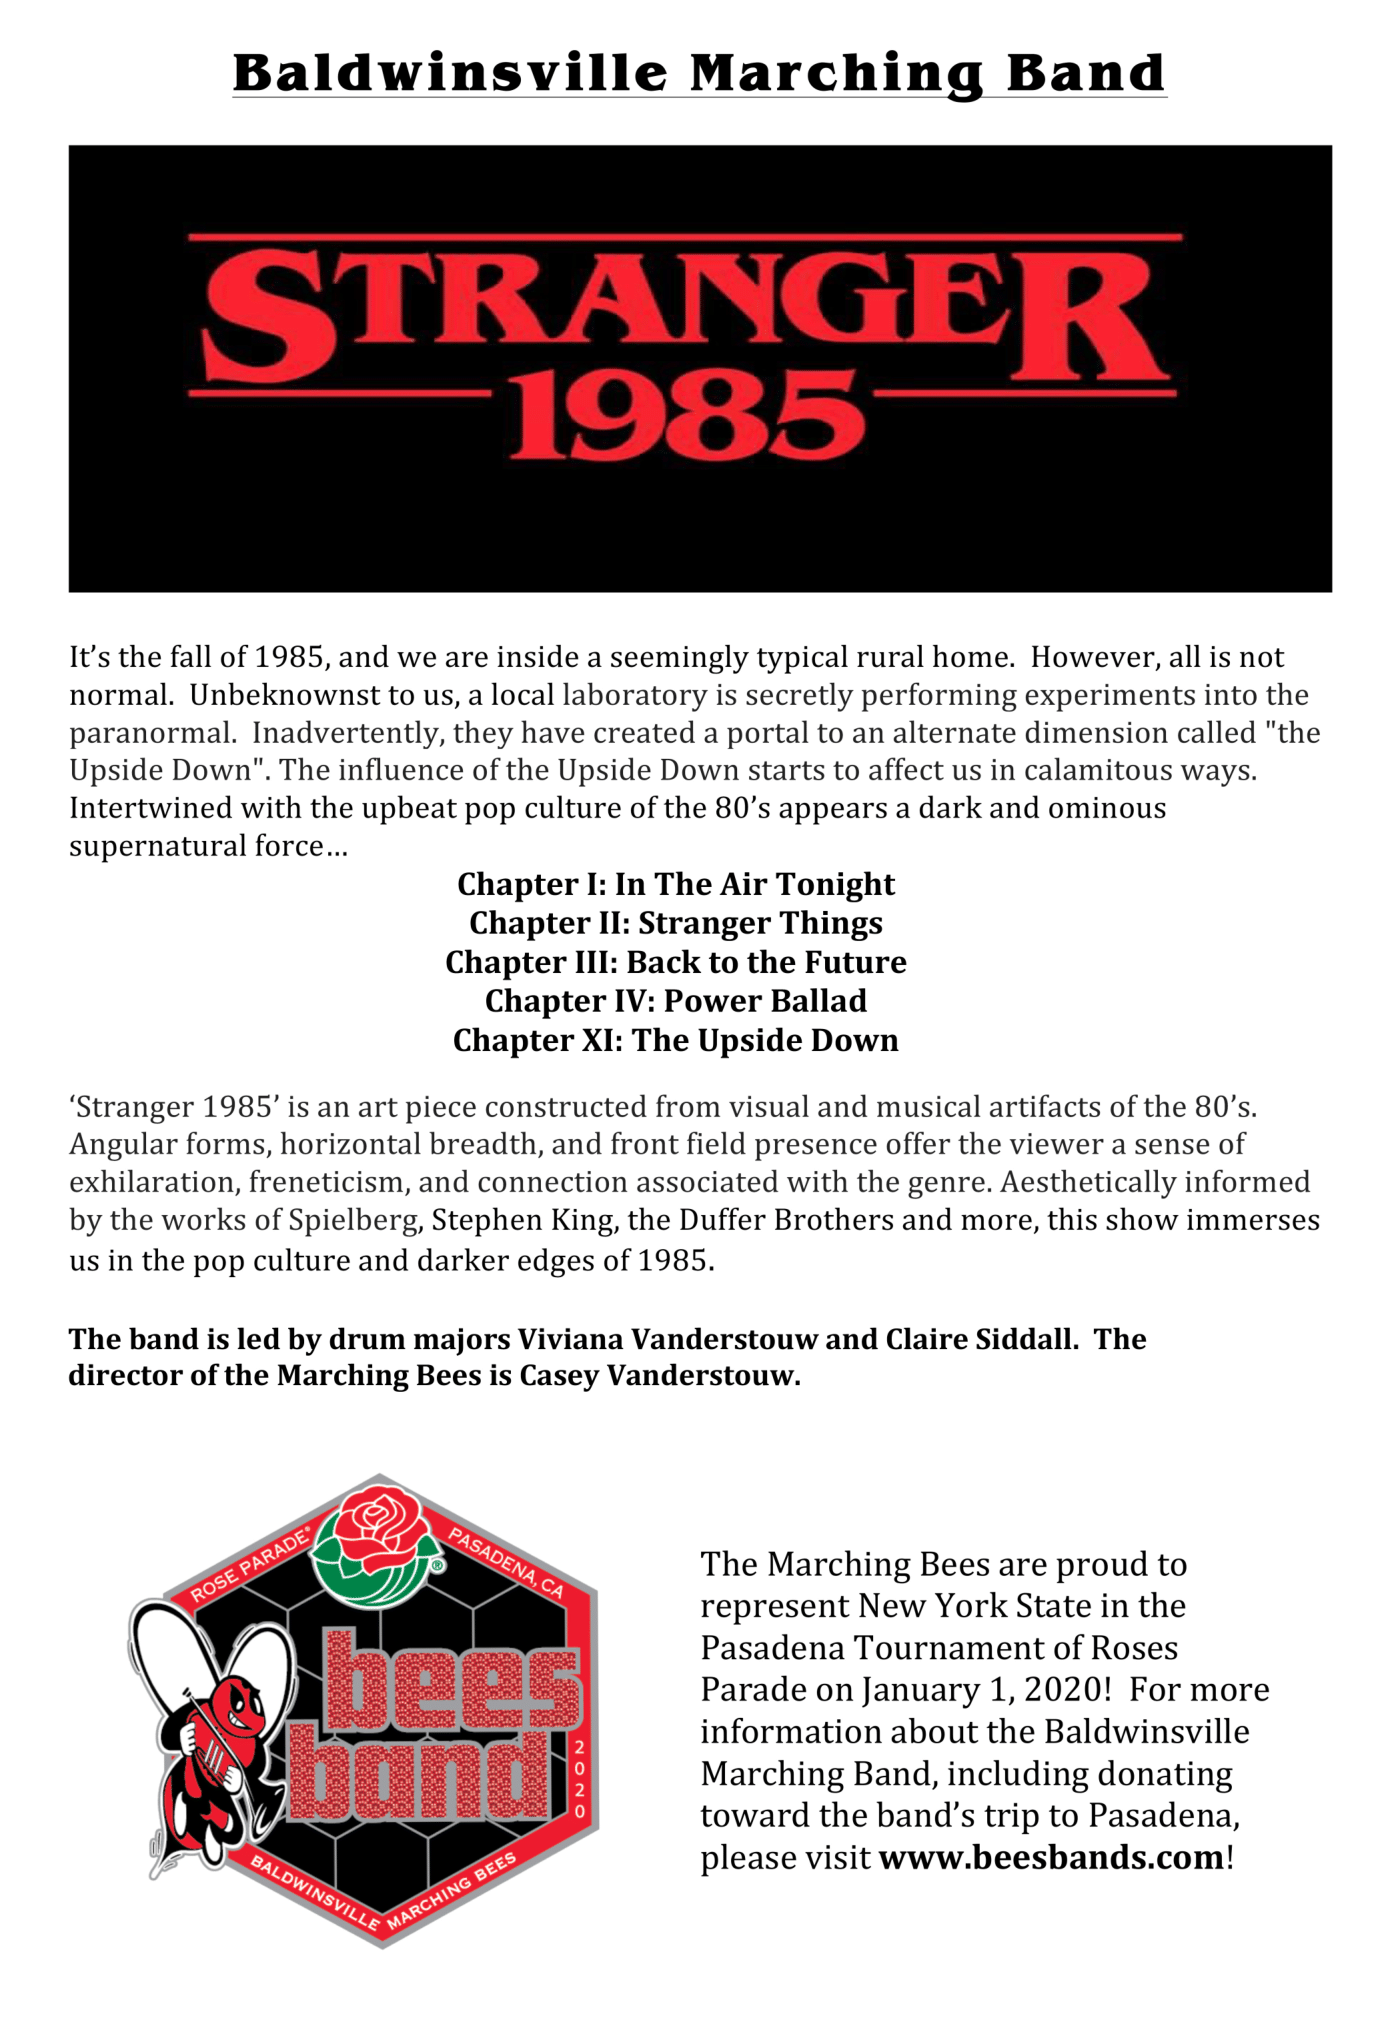 Baldwinsville Marching Band  Write-Up 2019 (1)-1.png